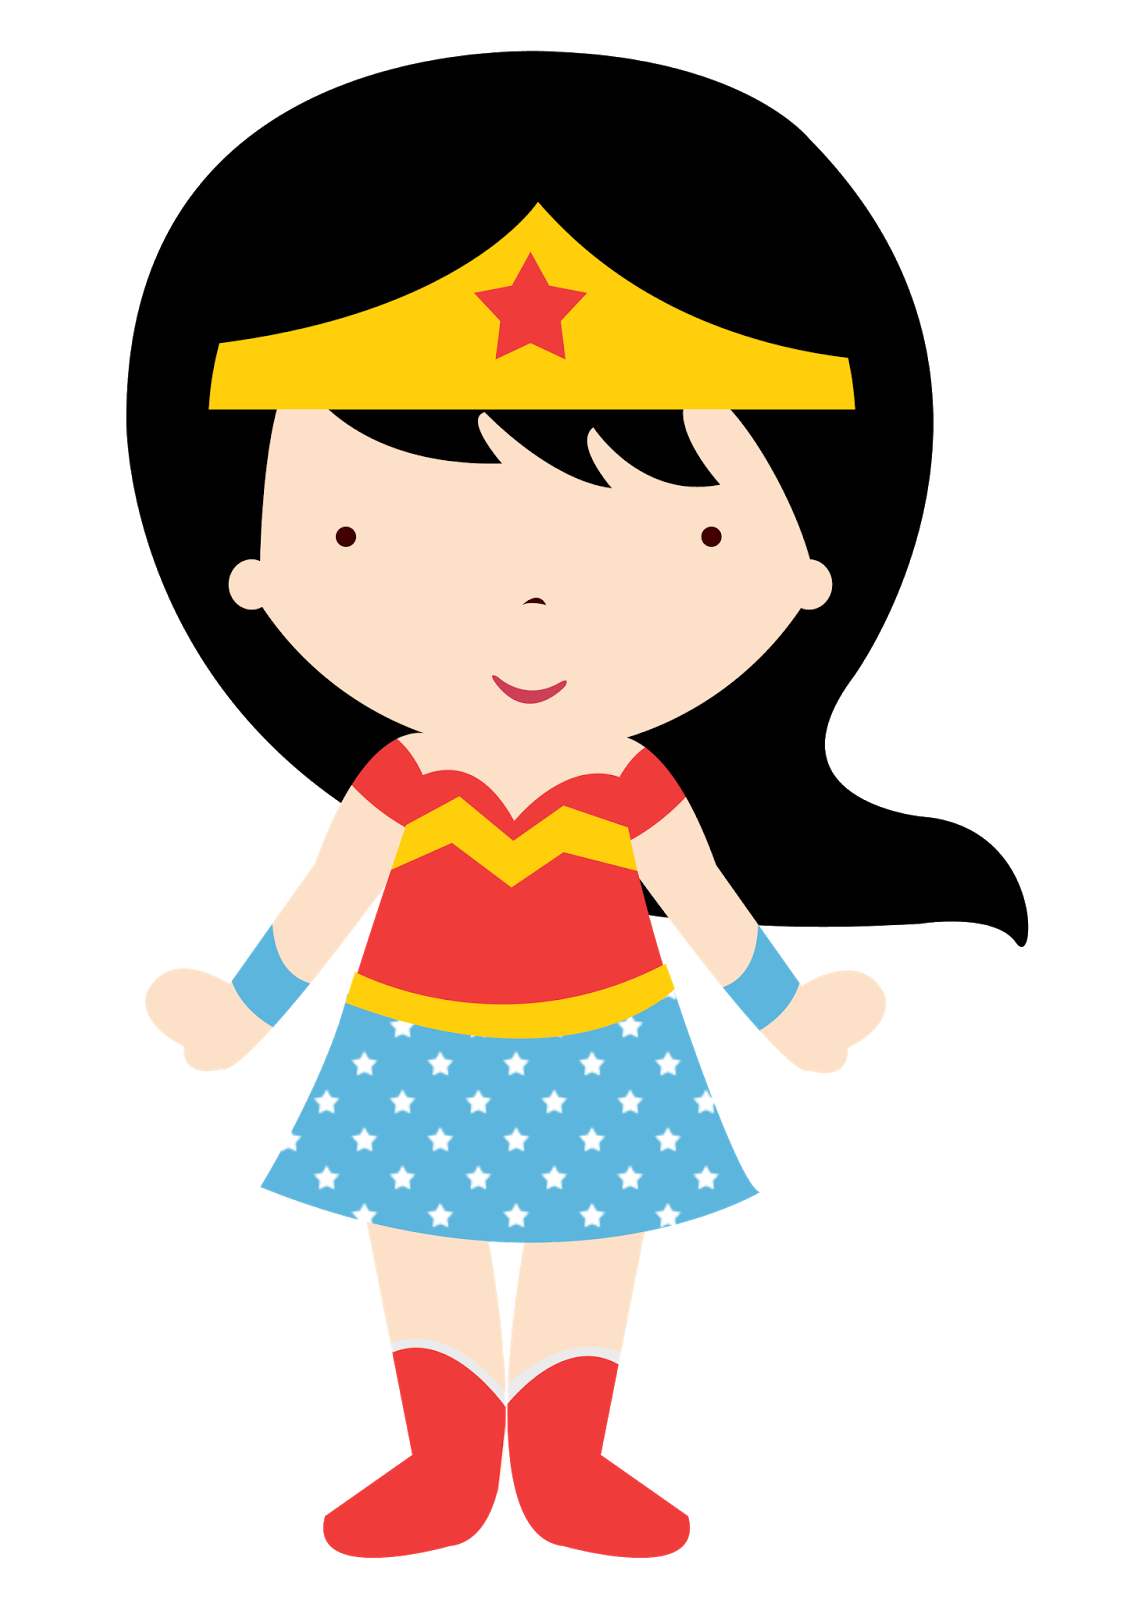 Wonder Woman Baby in Different Styles Clipart. - Oh My Fiesta! for Geeks